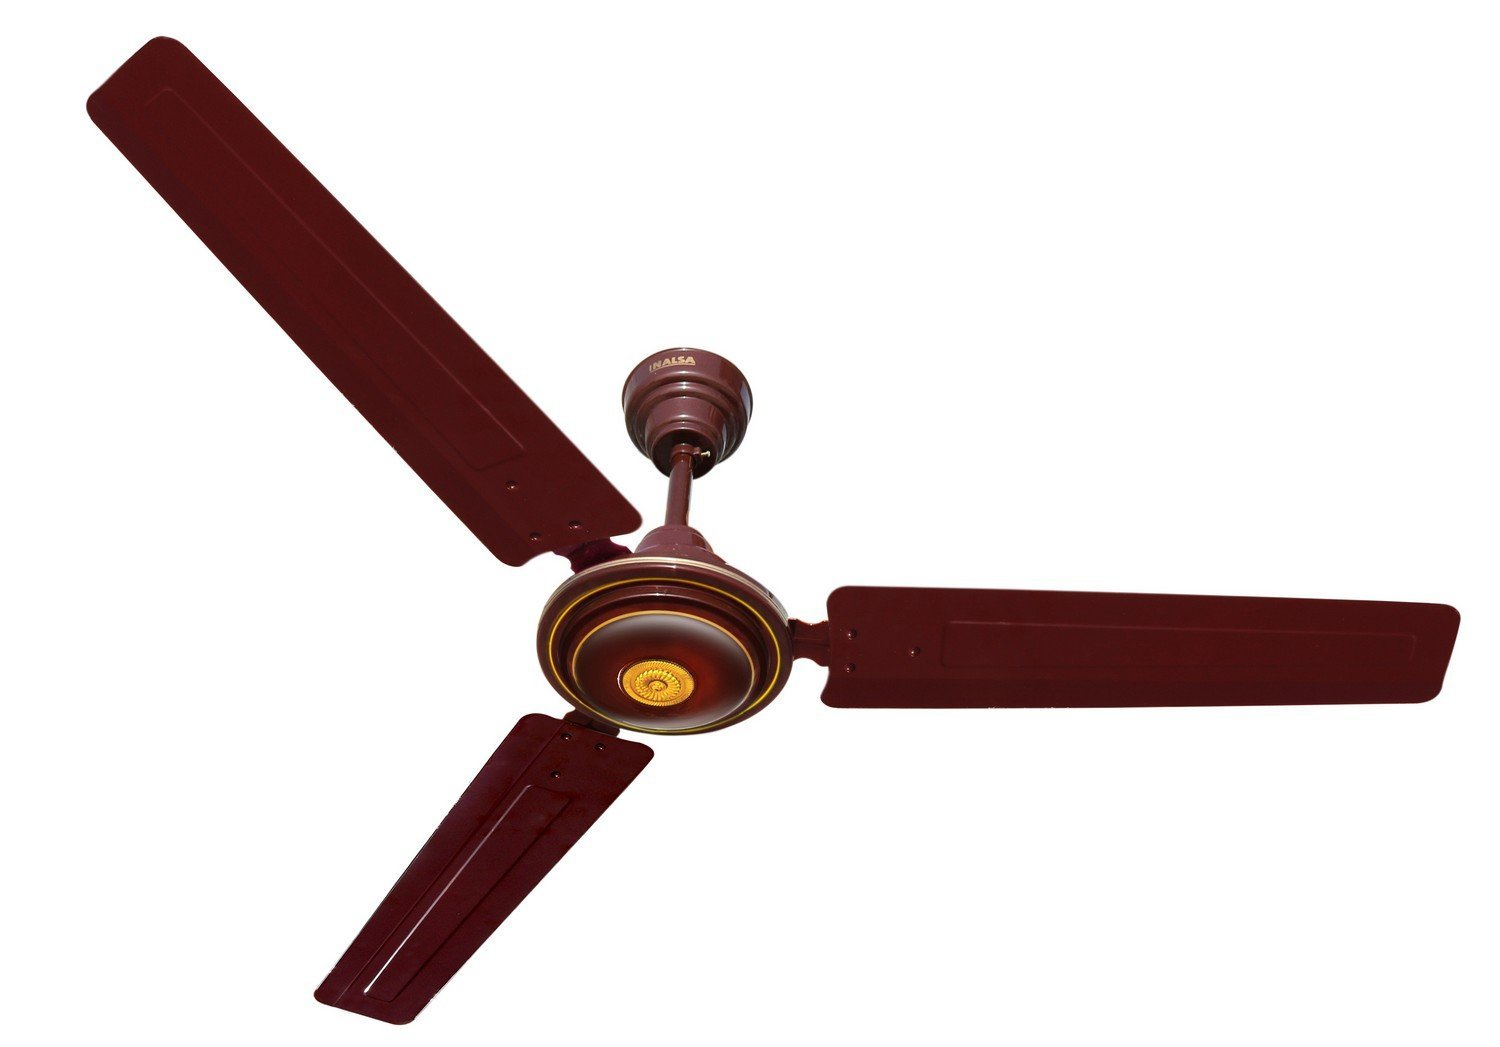 Inalsa aeromax 75 watt 48 inch ceiling fan at rs 999 amazon aloadofball Images